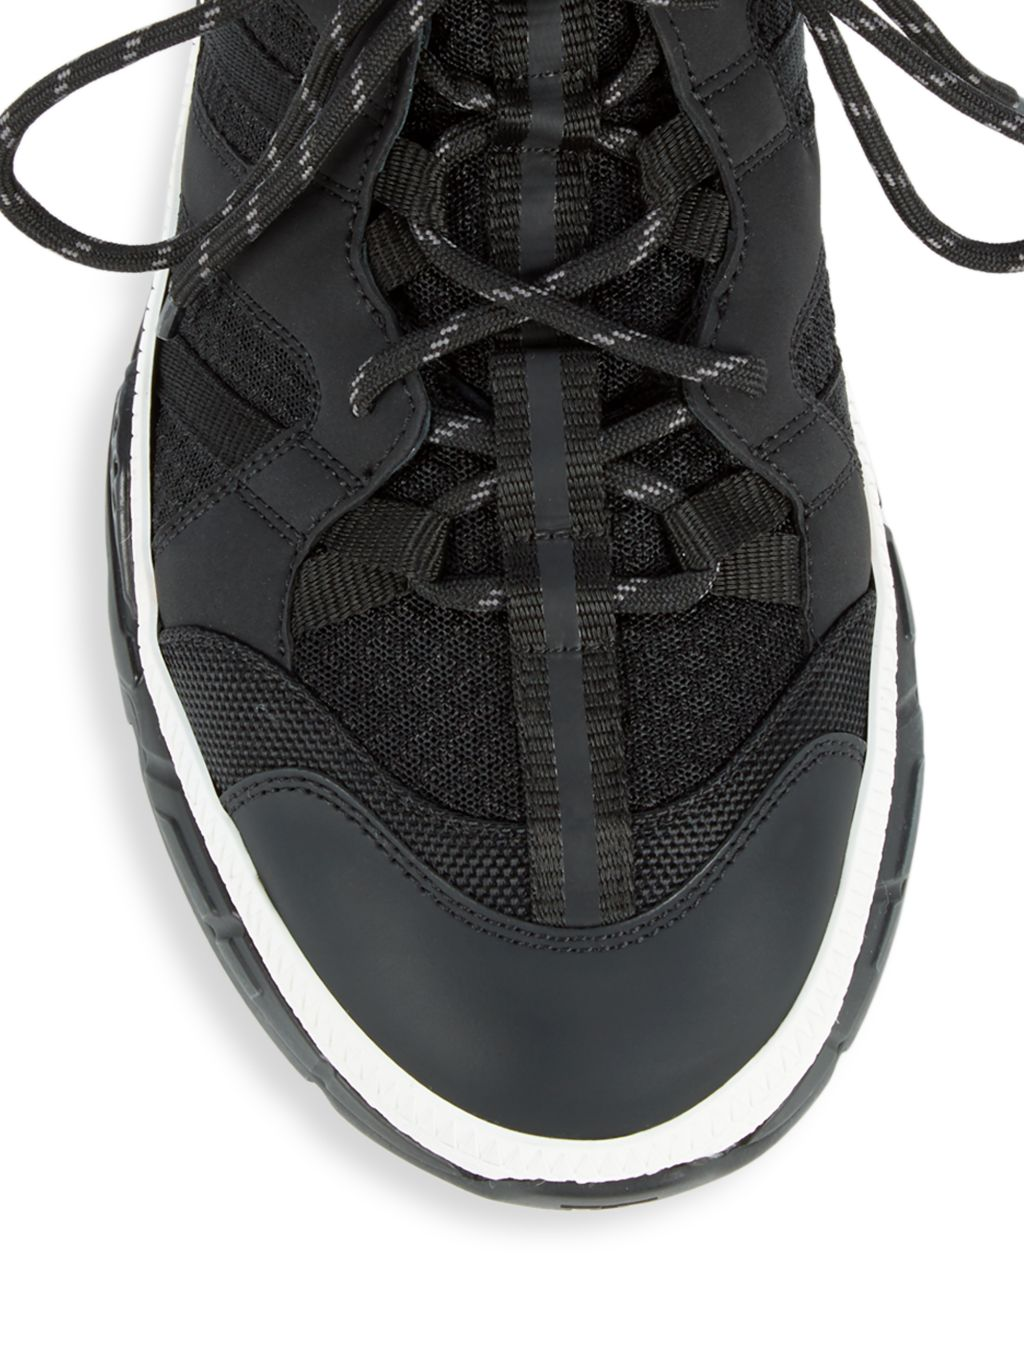 Burberry RS5 Sneaker Boots